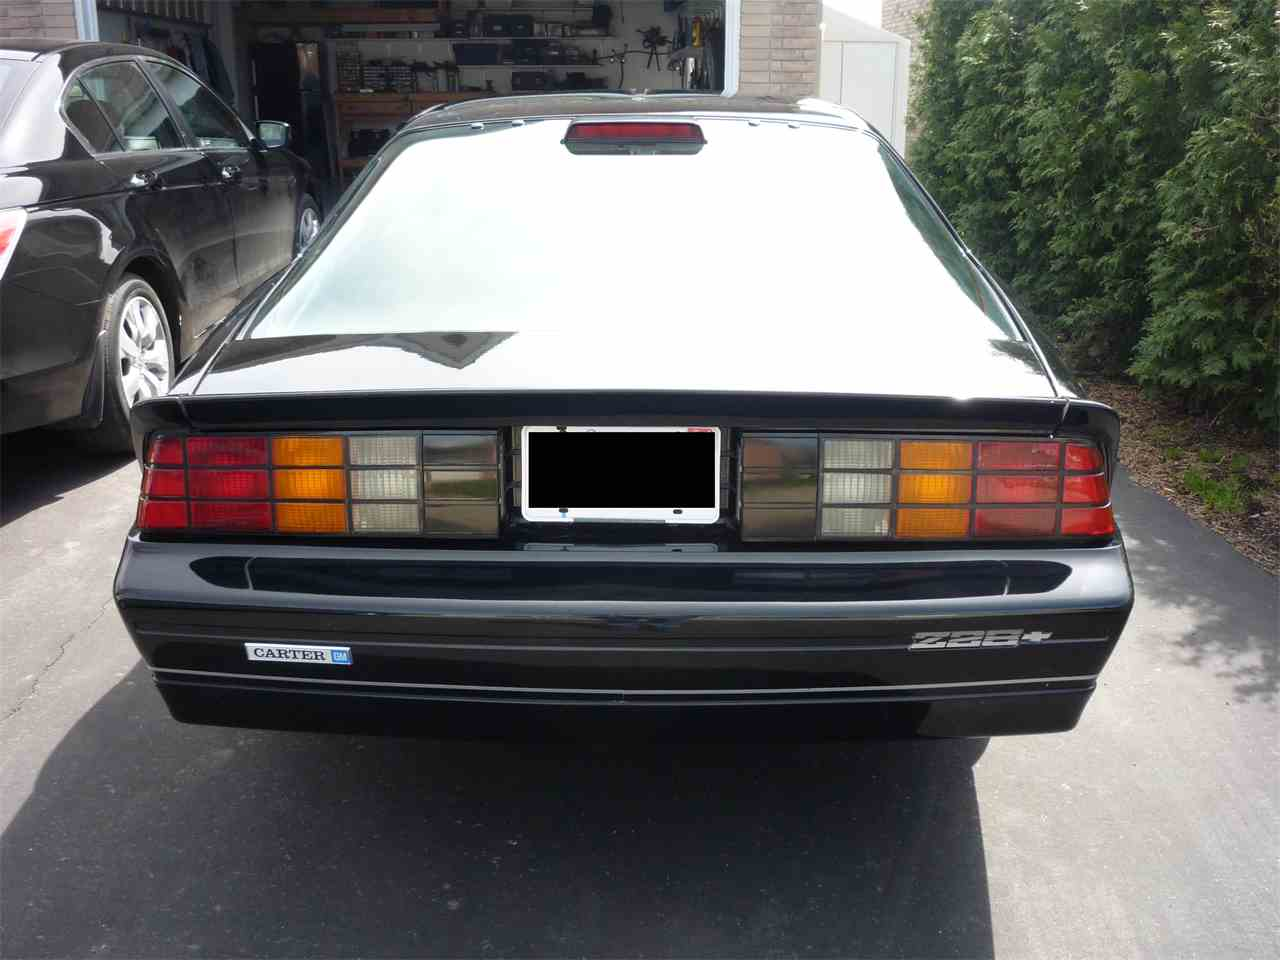 Large Picture of 1986 Chevrolet Camaro IROC-Z - $12,000.00 - GK6I